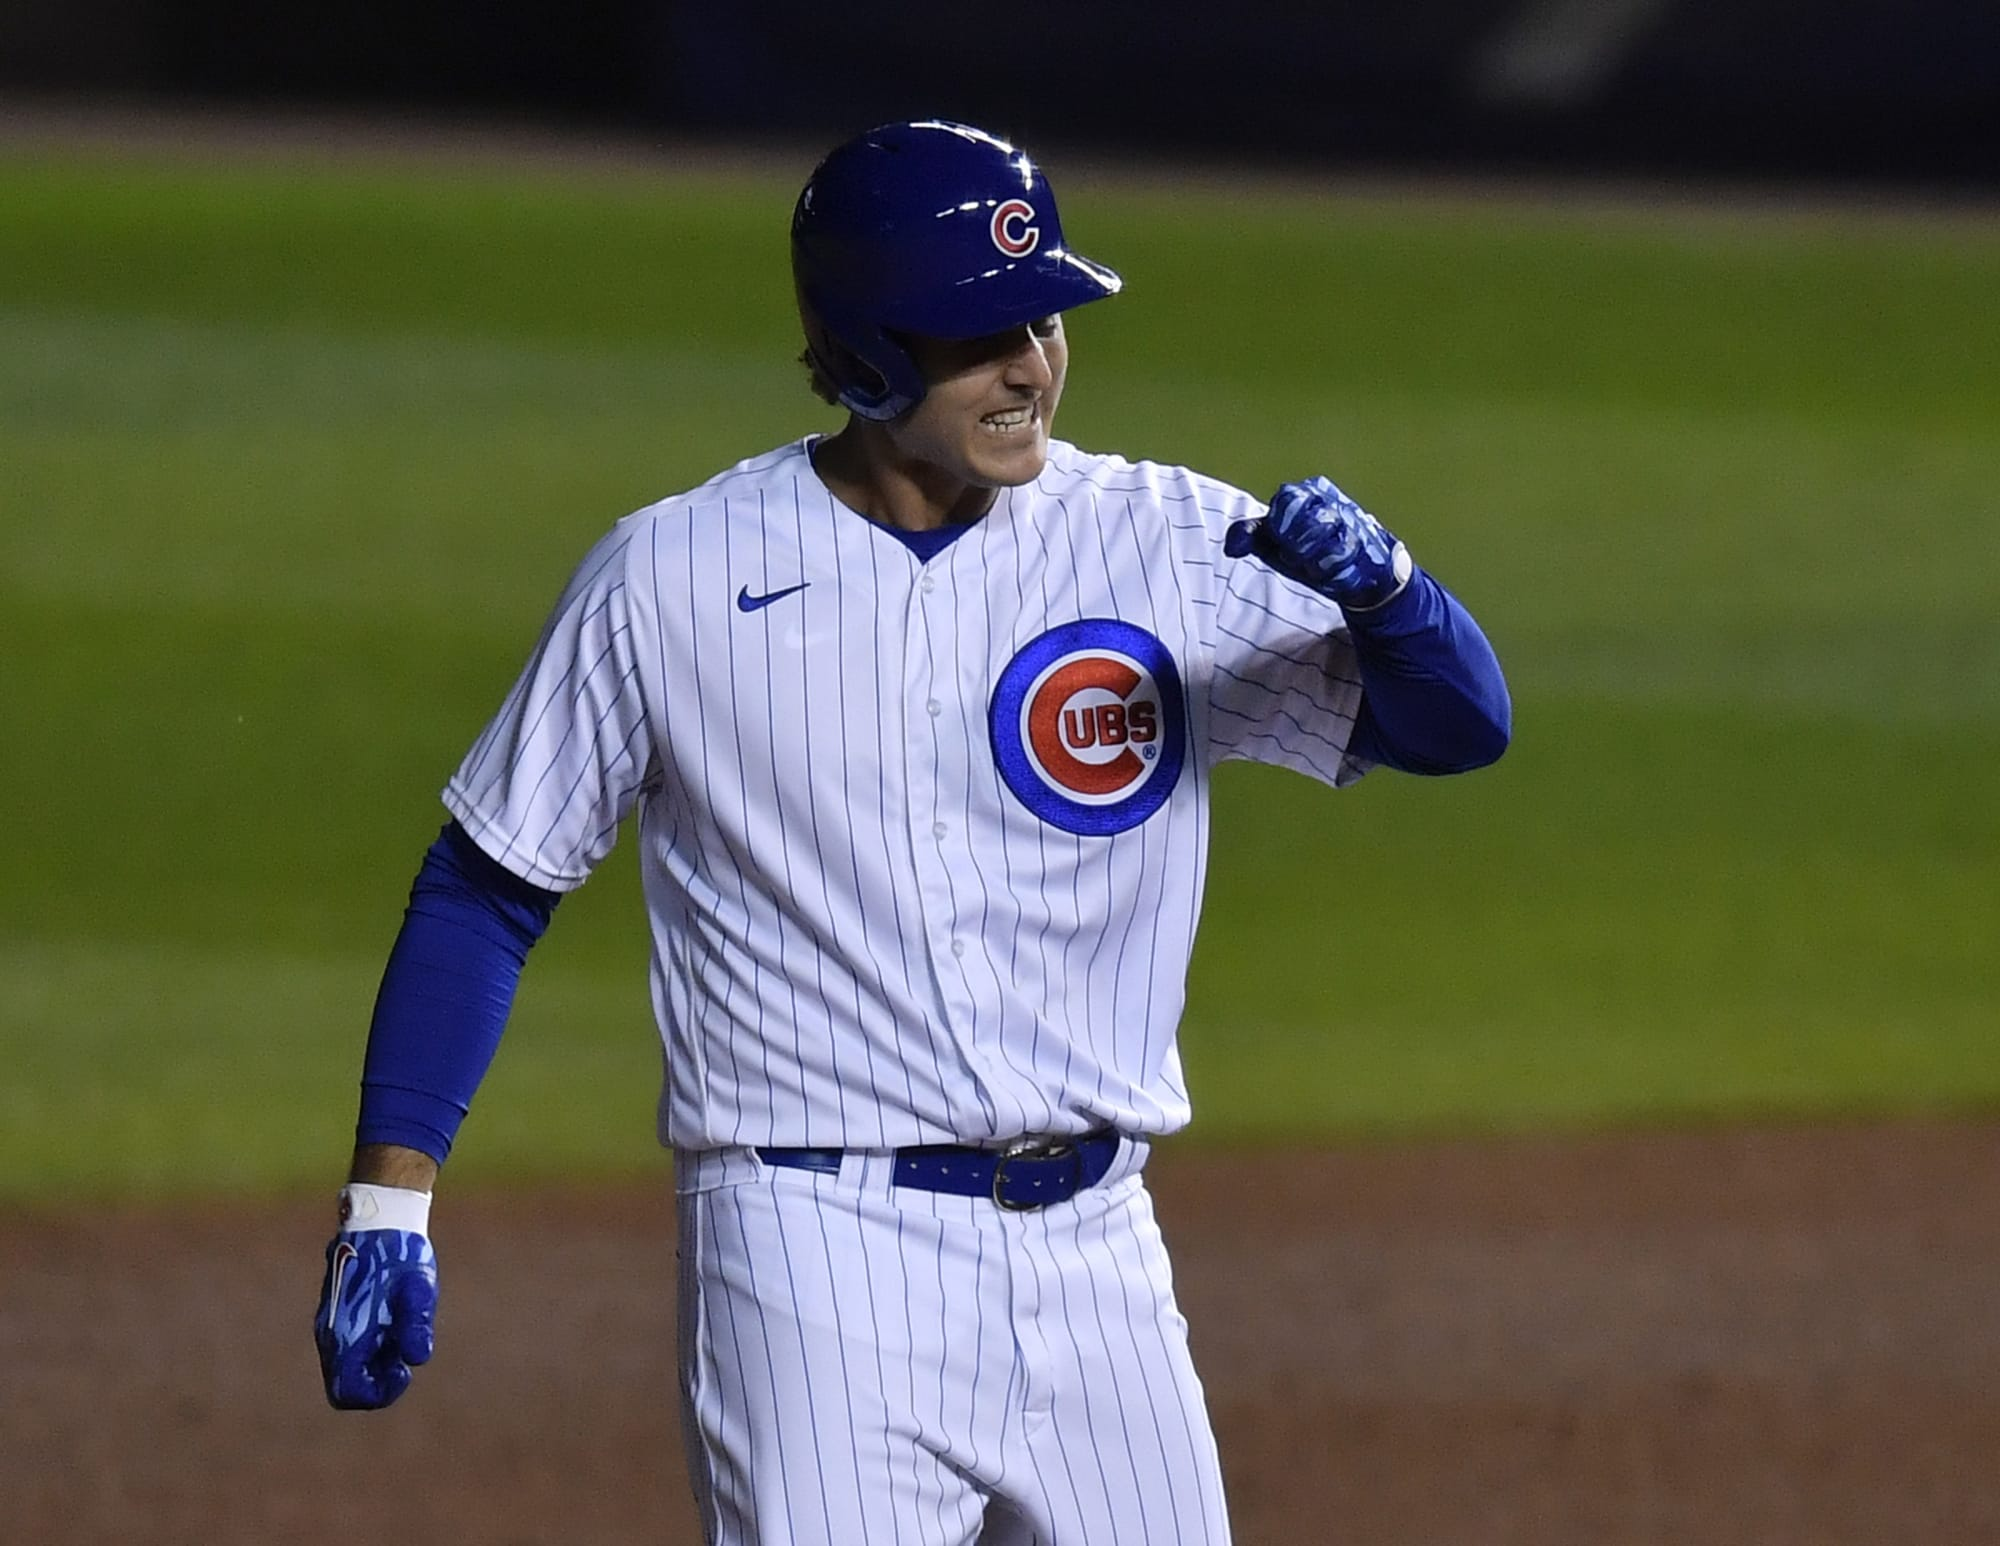 Yankees-Cubs Gary Sanchez-Anthony Rizzo blockbuster is too insane